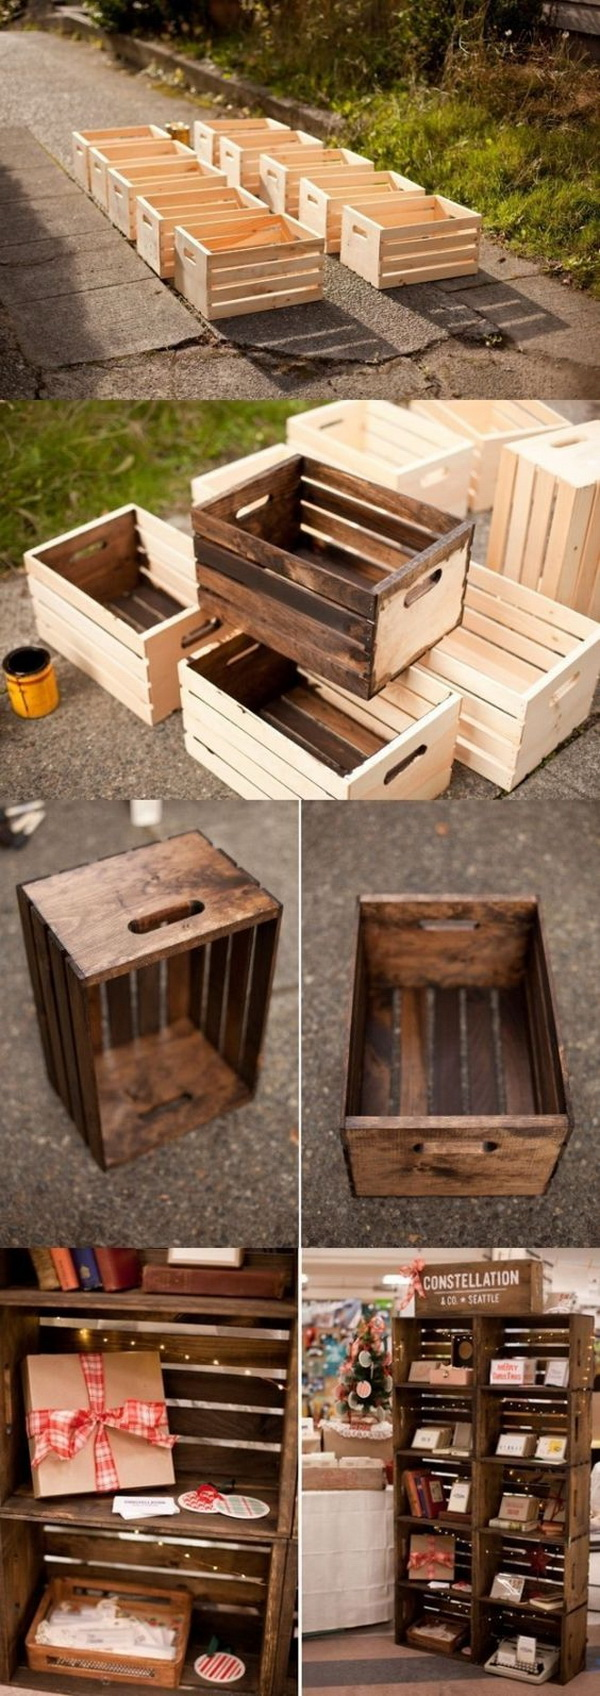 Apple Crates Display Case. Turn Walmart crates into this rustic display case for your home for under $10.